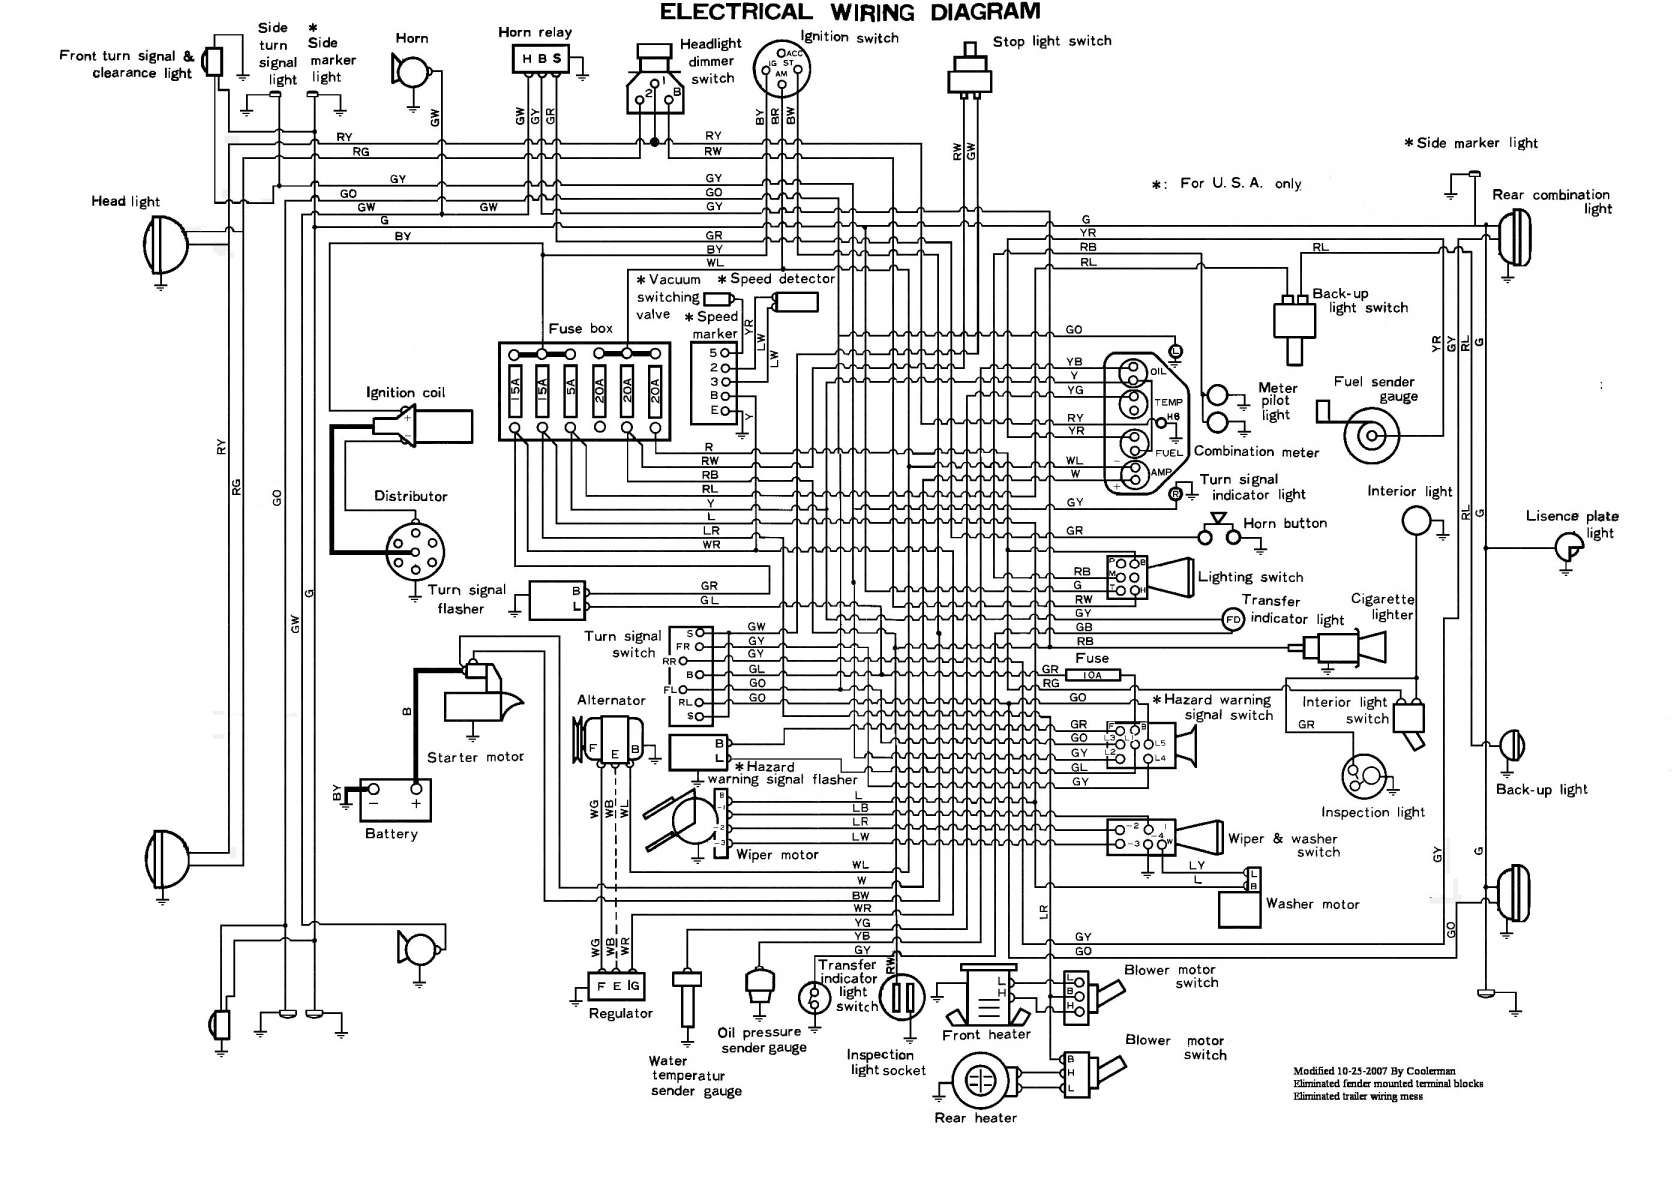 10 Hyundai I10 Electrical Wiring Diagram